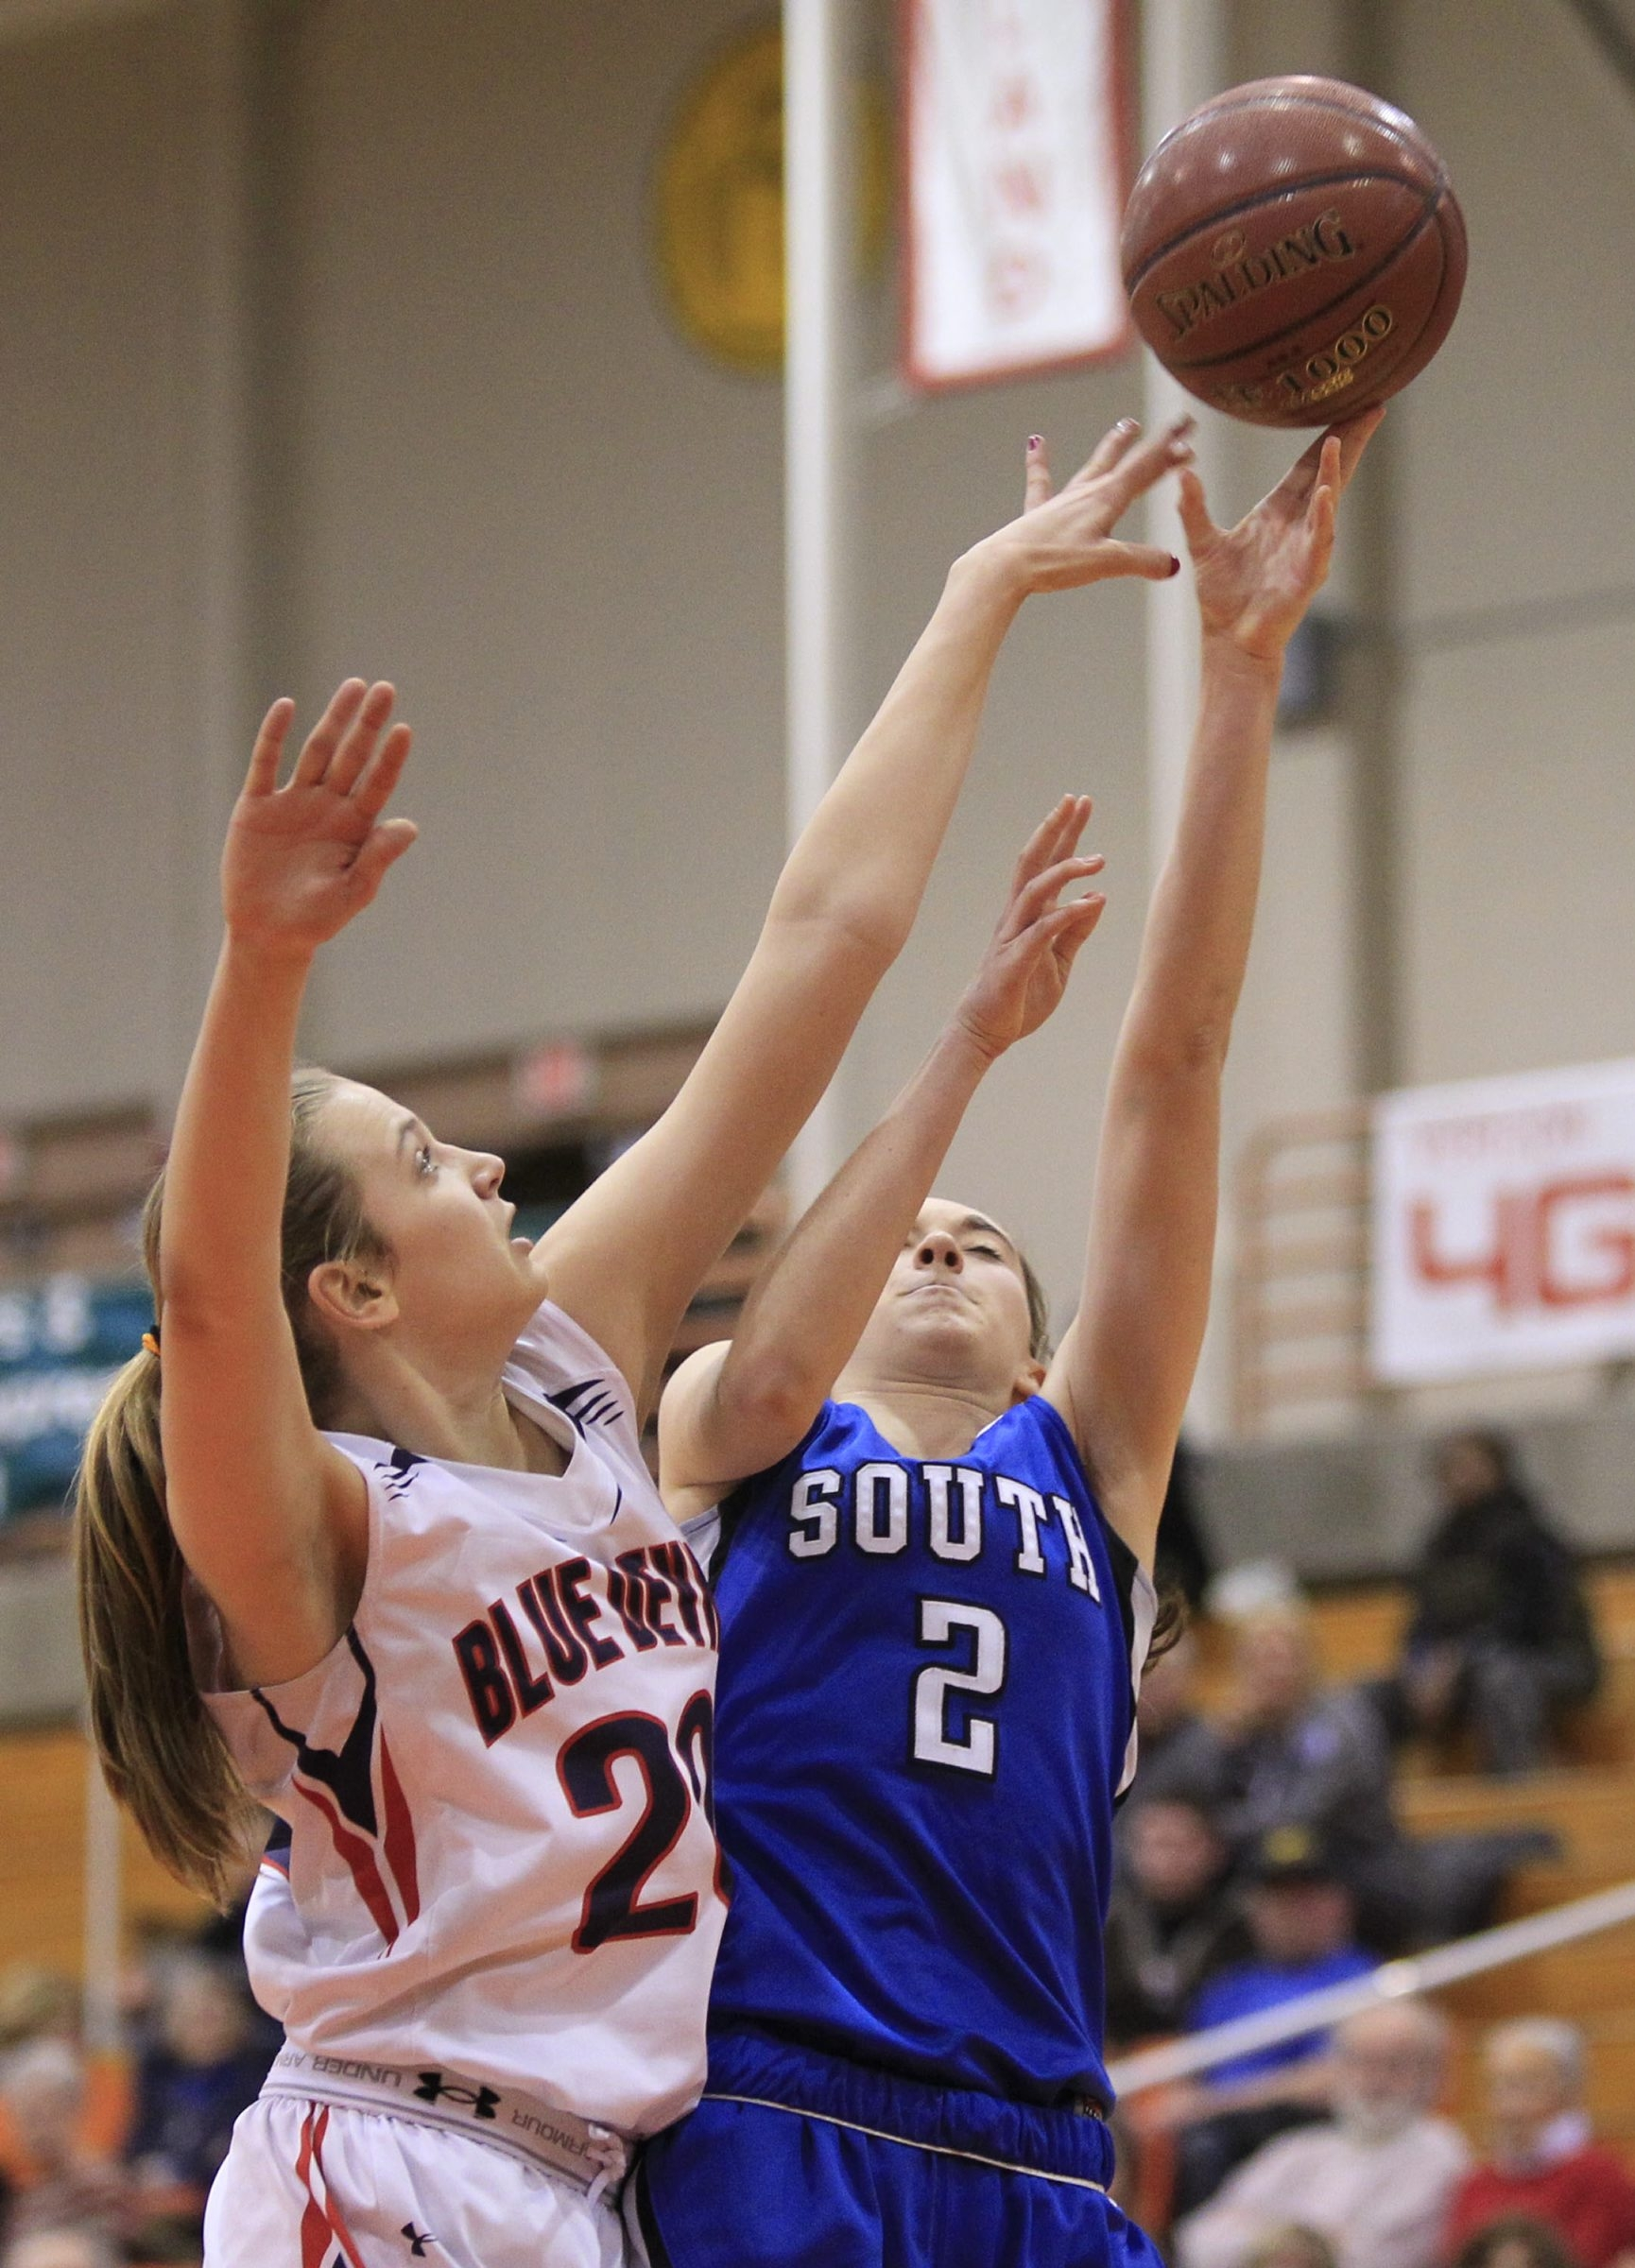 In girls sectional basketball action: East Aurora's Emma Brinker (20) tips a shot by Erin Egan (2) of Williamsville South (left); Chrisanna Green (10) of Jamestown and Ericka Taplin of Williamsville North (32) battle (top right). and Alanna Herne (14) shoots for Tonawanda (bottom right).  .